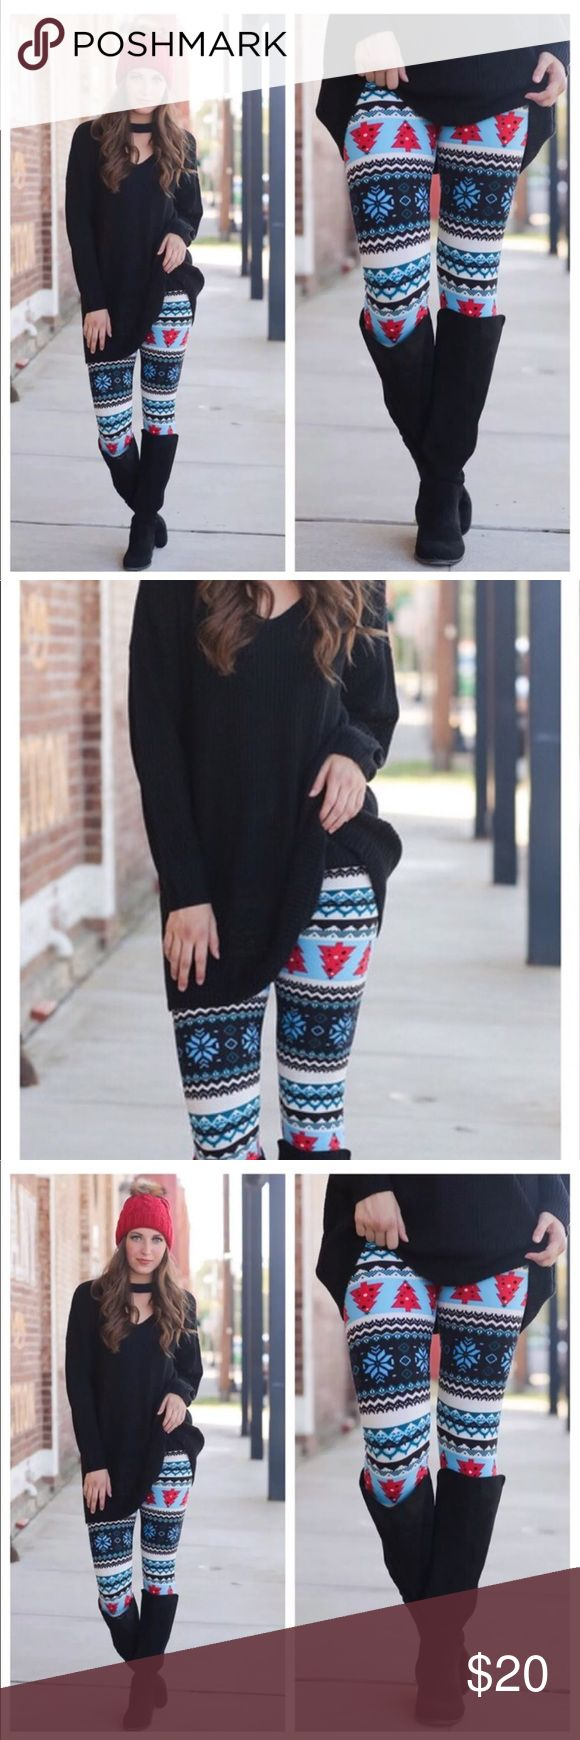 🌲Women's Buttery Soft Winter Holiday Leggings🌲 Adorable women's Winter Holiday Leggings are perfect for the time of year. Match them with any of the black tops in my closet. I have the Sweater Dress and Beanie Listed as well. These will work as festive holiday leggings and can be used as pajamas too. Made of 92% Polyester and 8% Spandex. O/S Fits 2-12 Comfortably. Only one pair left.🌲 Infinity Raine Pants Leggings